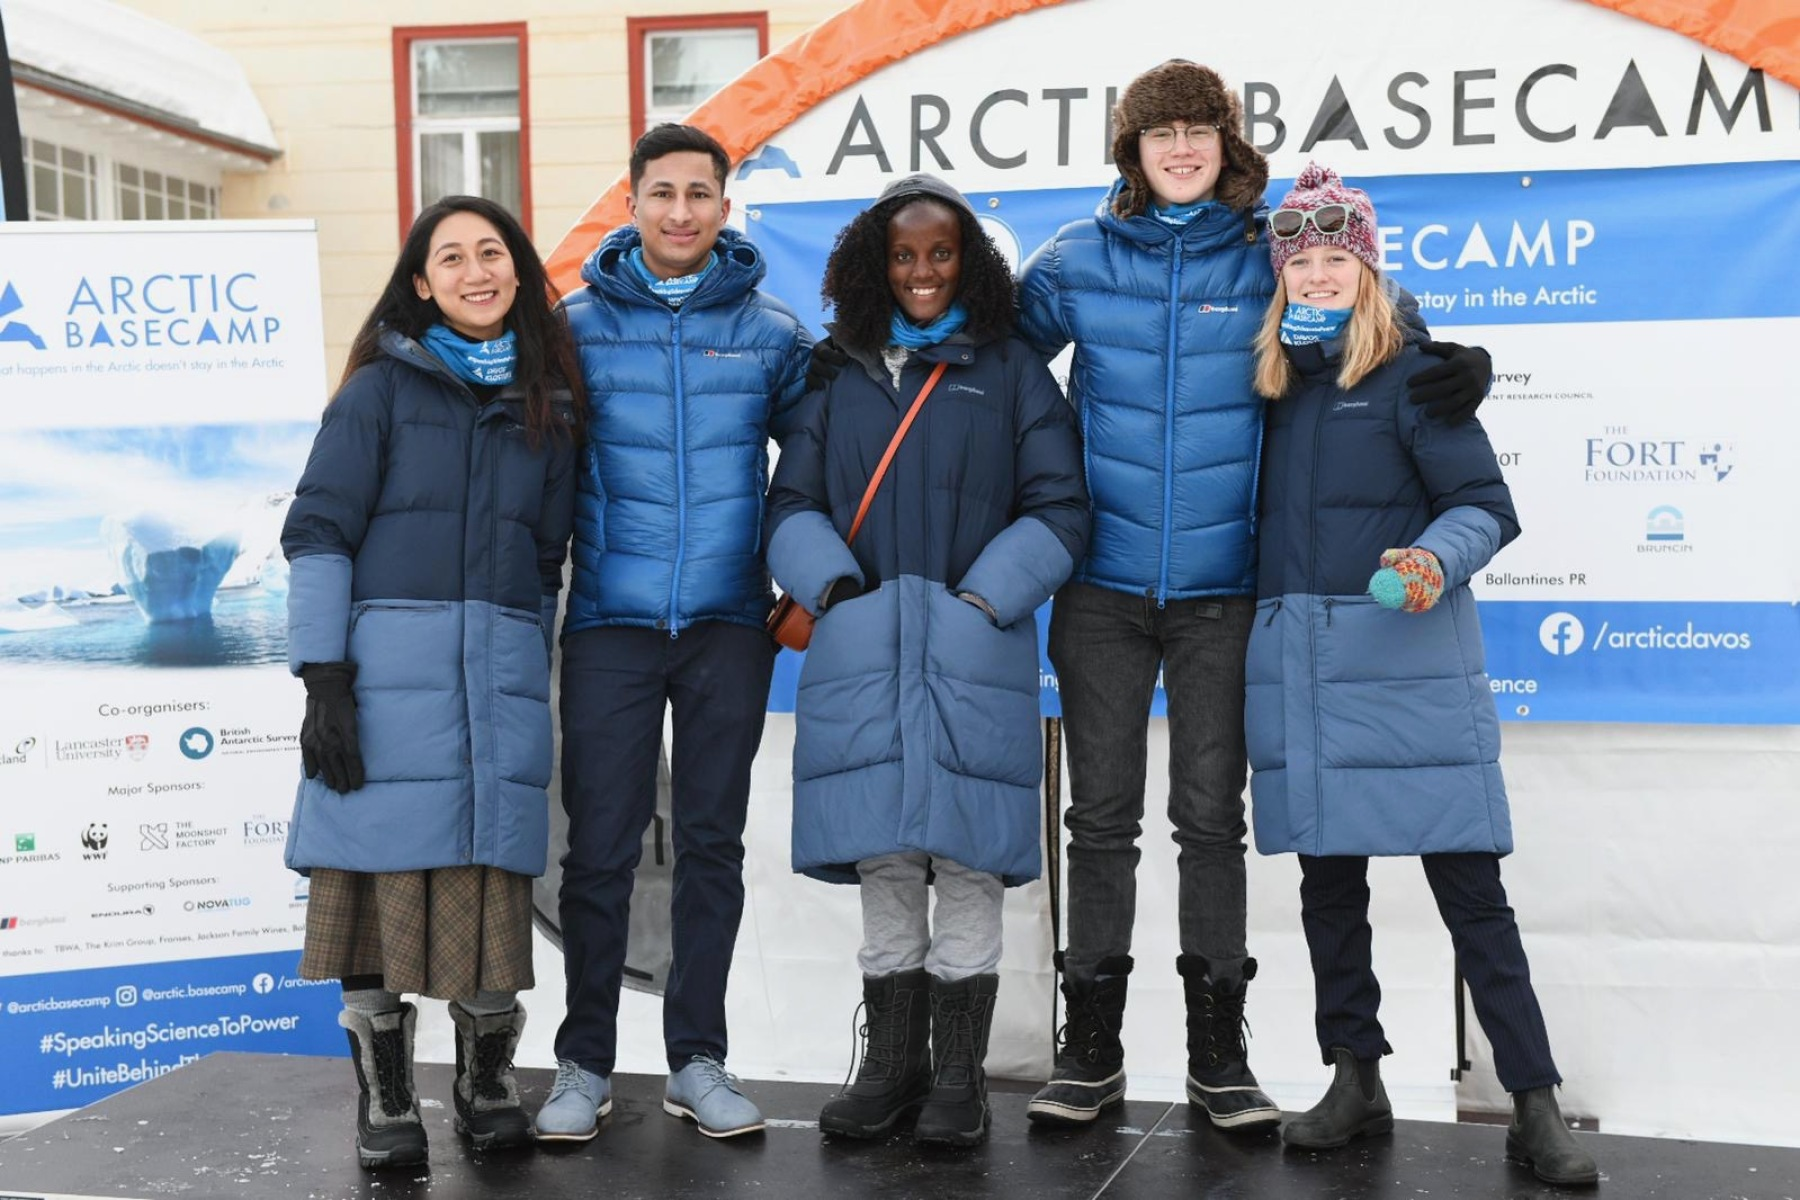 Youth Climate Delegates at the Arctic Basecamp in Davos, Switzerland, during the 2020 World Economic Forum.